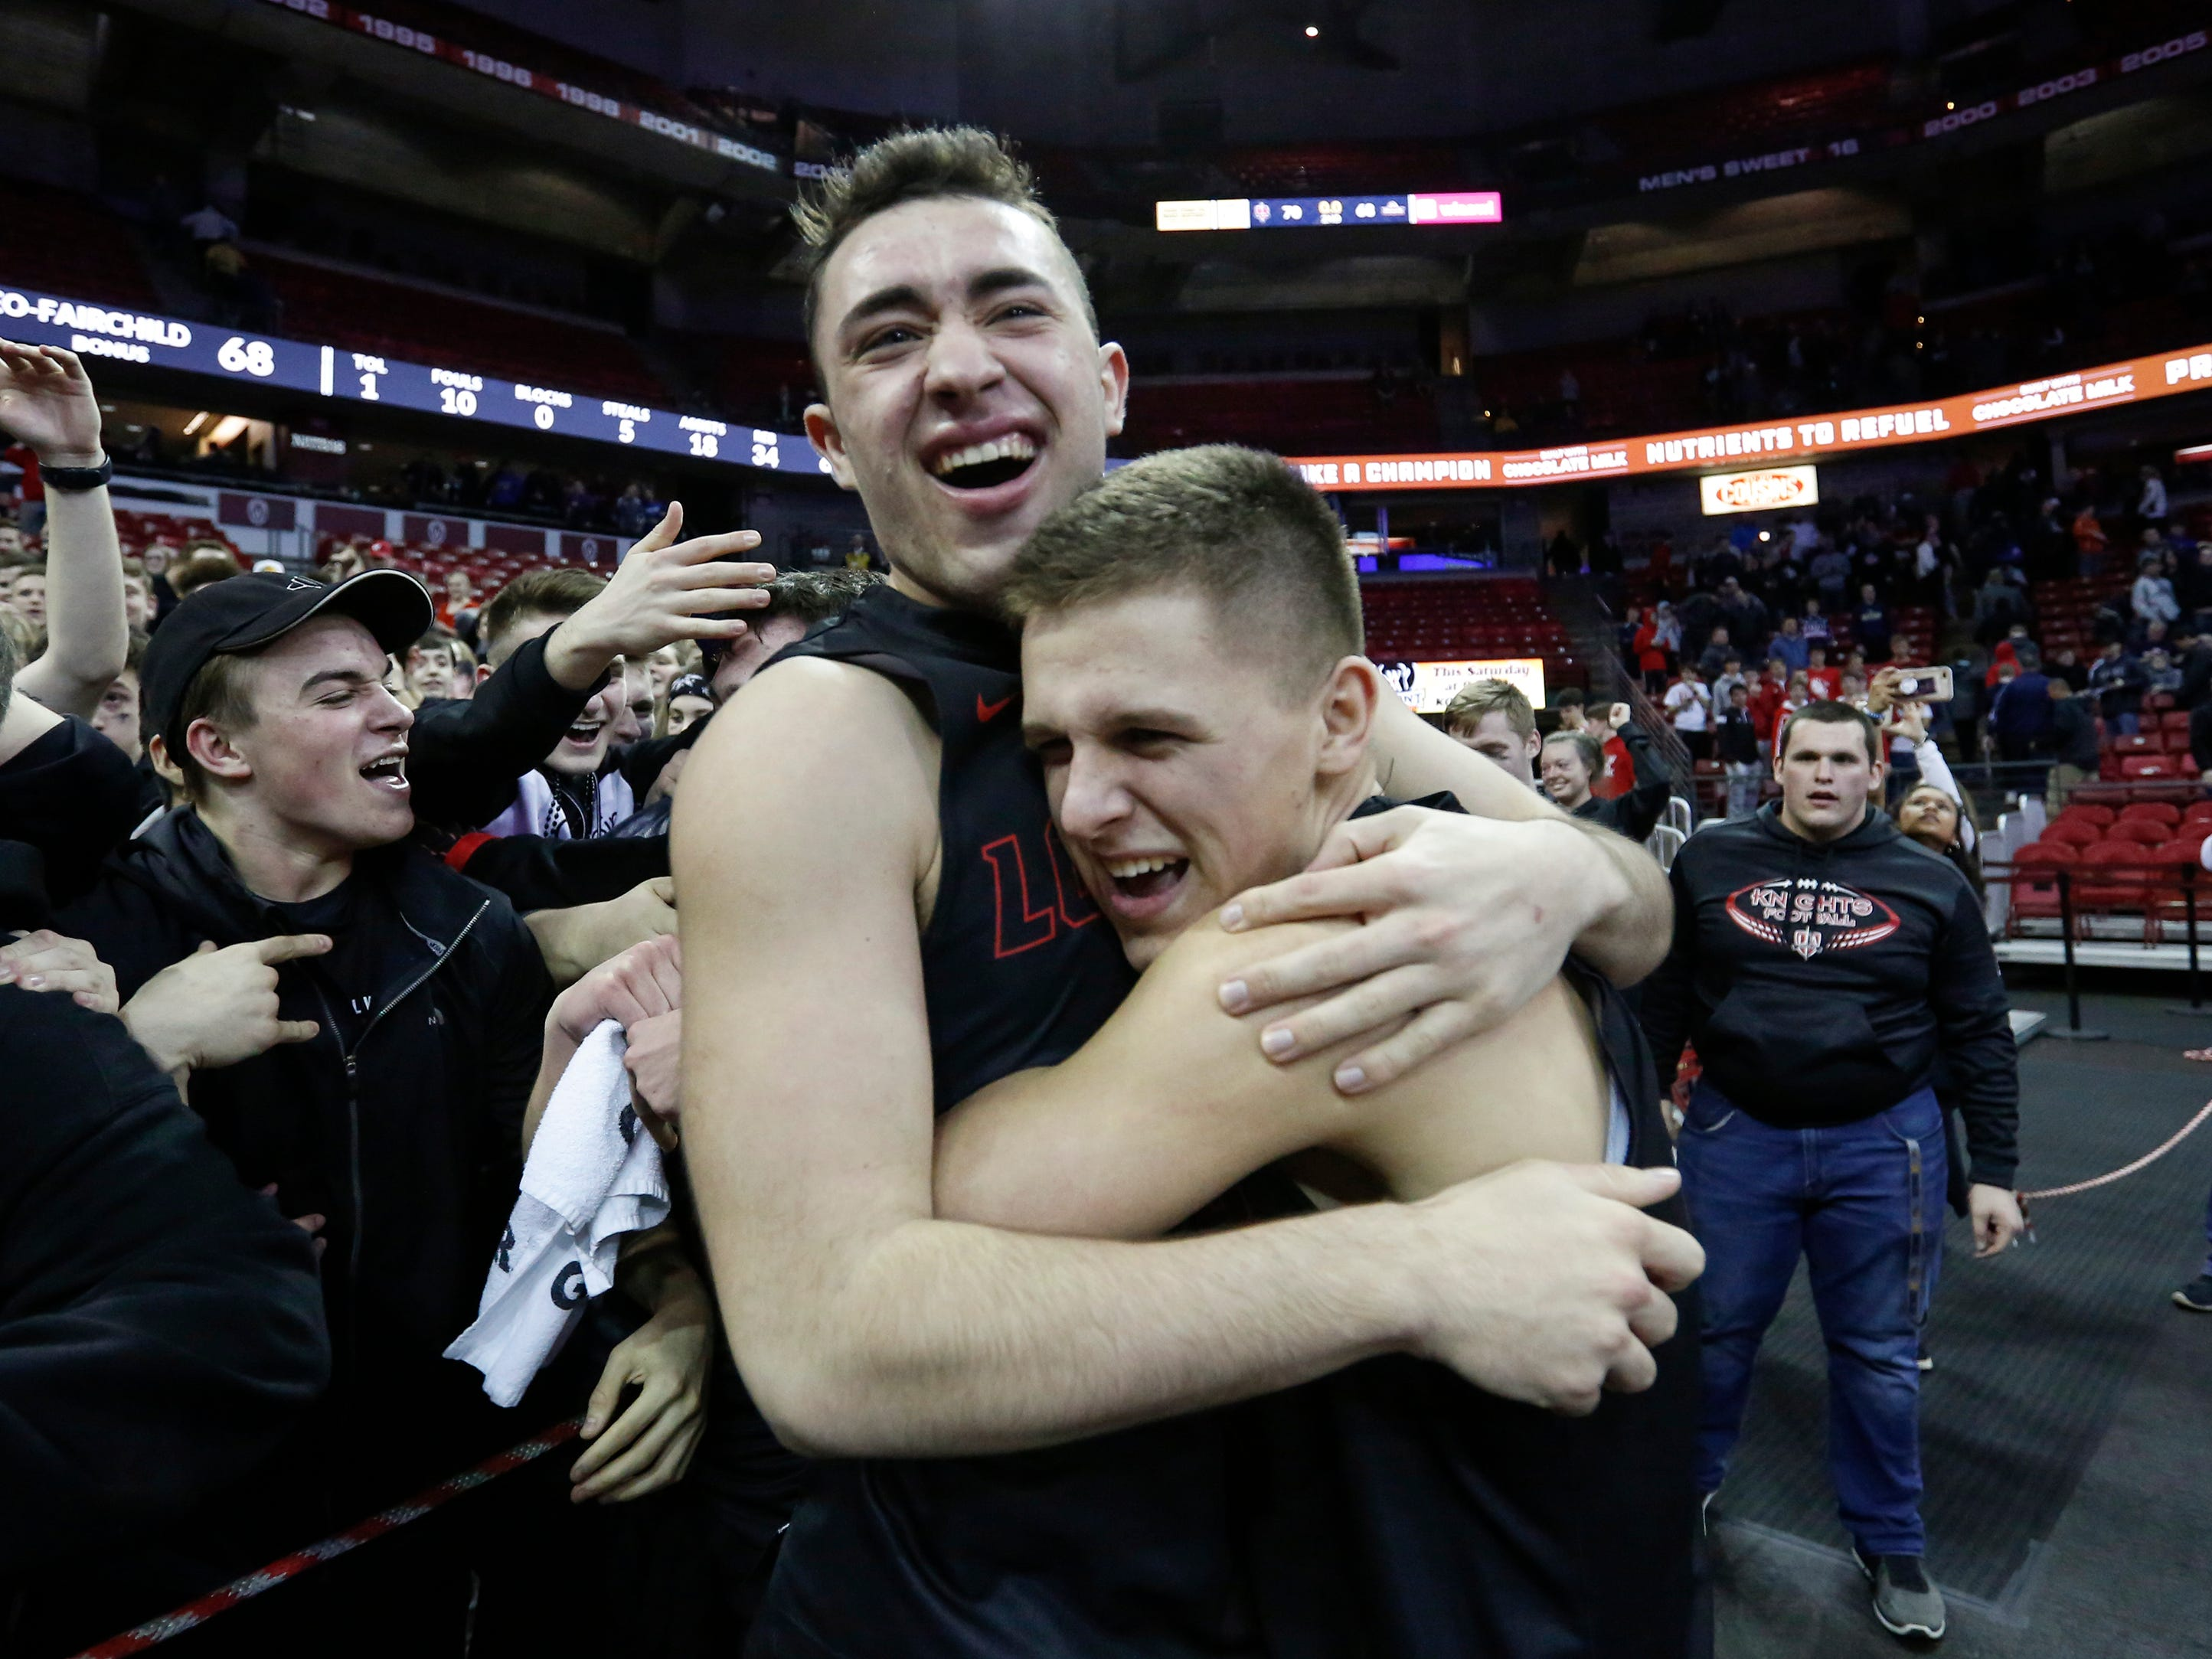 Lourdes Academy's Benny Huizenga, left, embraces teammate Caden Chier after defeating Osseo-Fairchild High School in their WIAA Division 4 boys basketball state semifinal at the Kohl Center Thursday, March 14, 2019, in Madison, Wis. Lourdes Academy defeated Osseo-Fairchild 70-68 to advance to the Division 4 championship game.